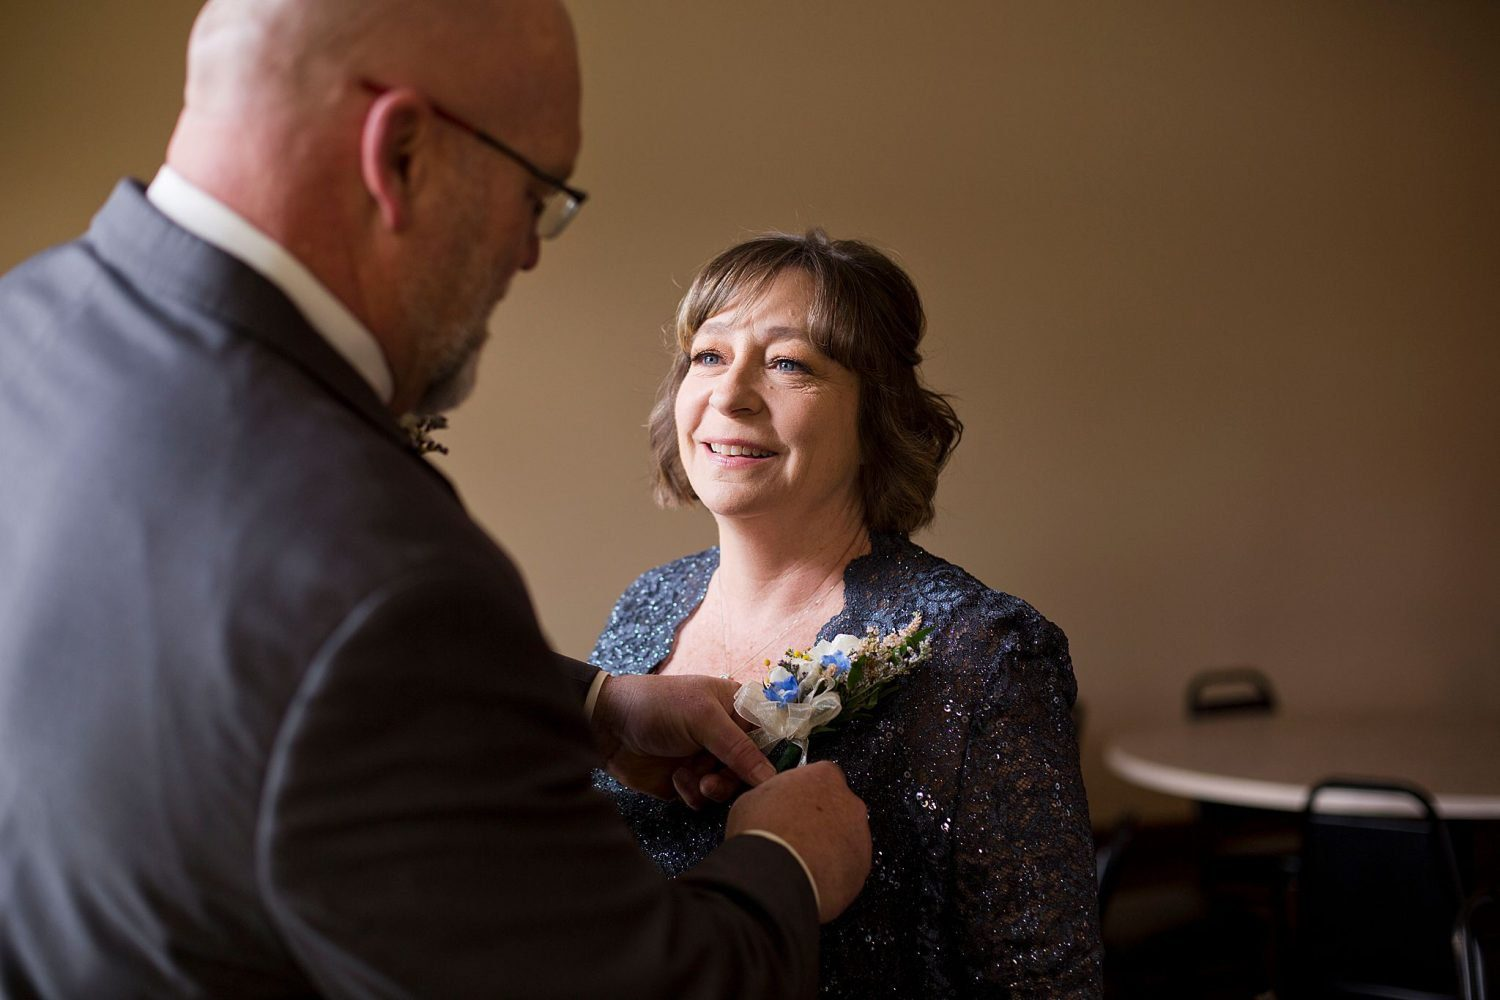 Mother of the bride gets her corsage pinned on by the father of the bride.